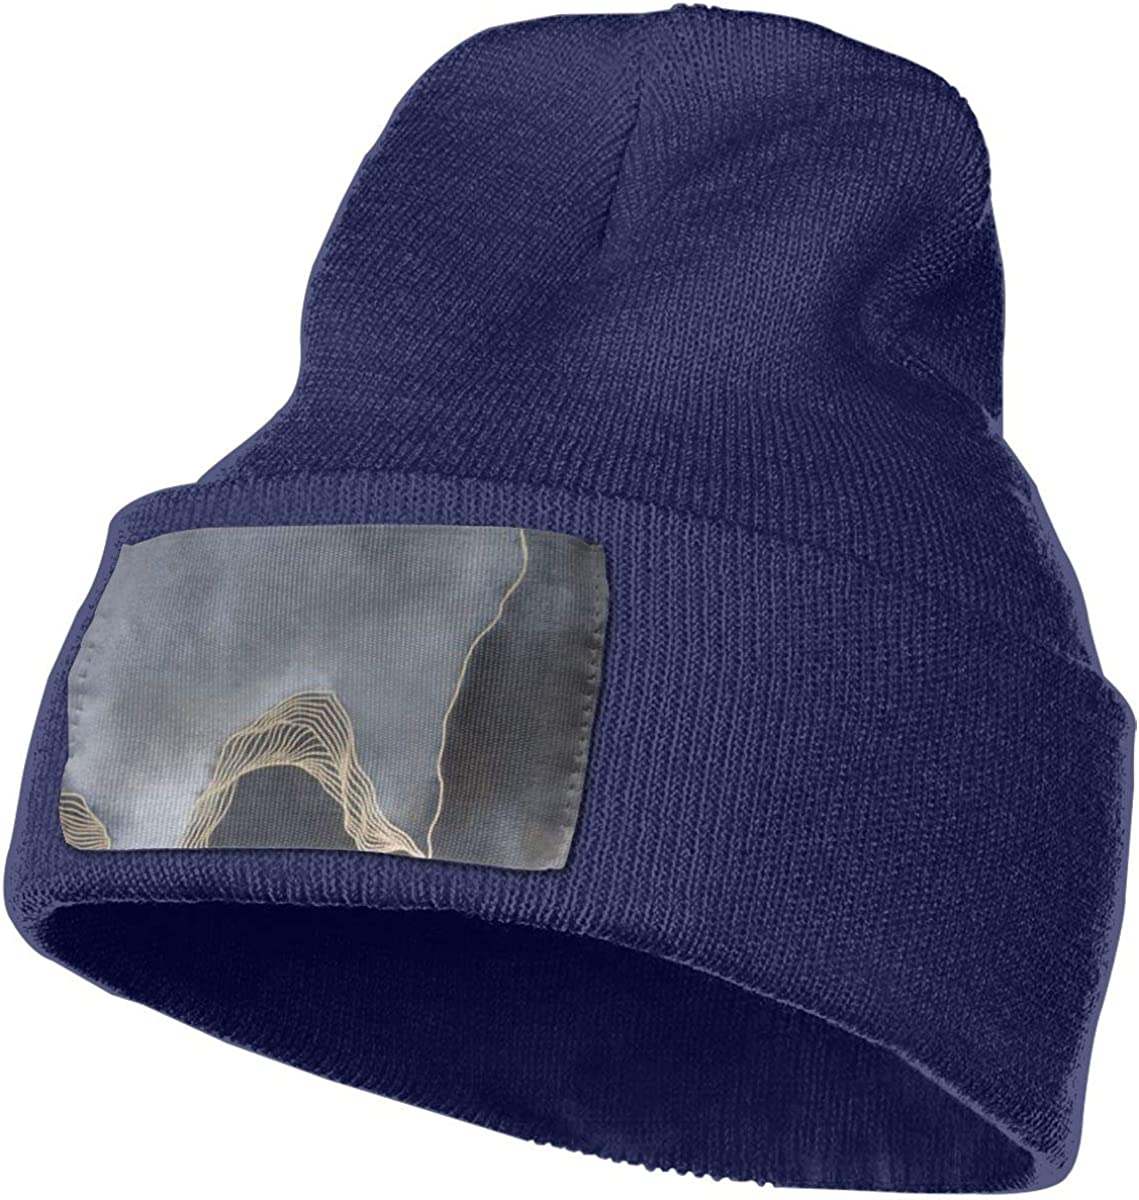 Grey Cloudy Night Men /& Women Stretchy Knitting Beanie Hat Skull Rollup Cap